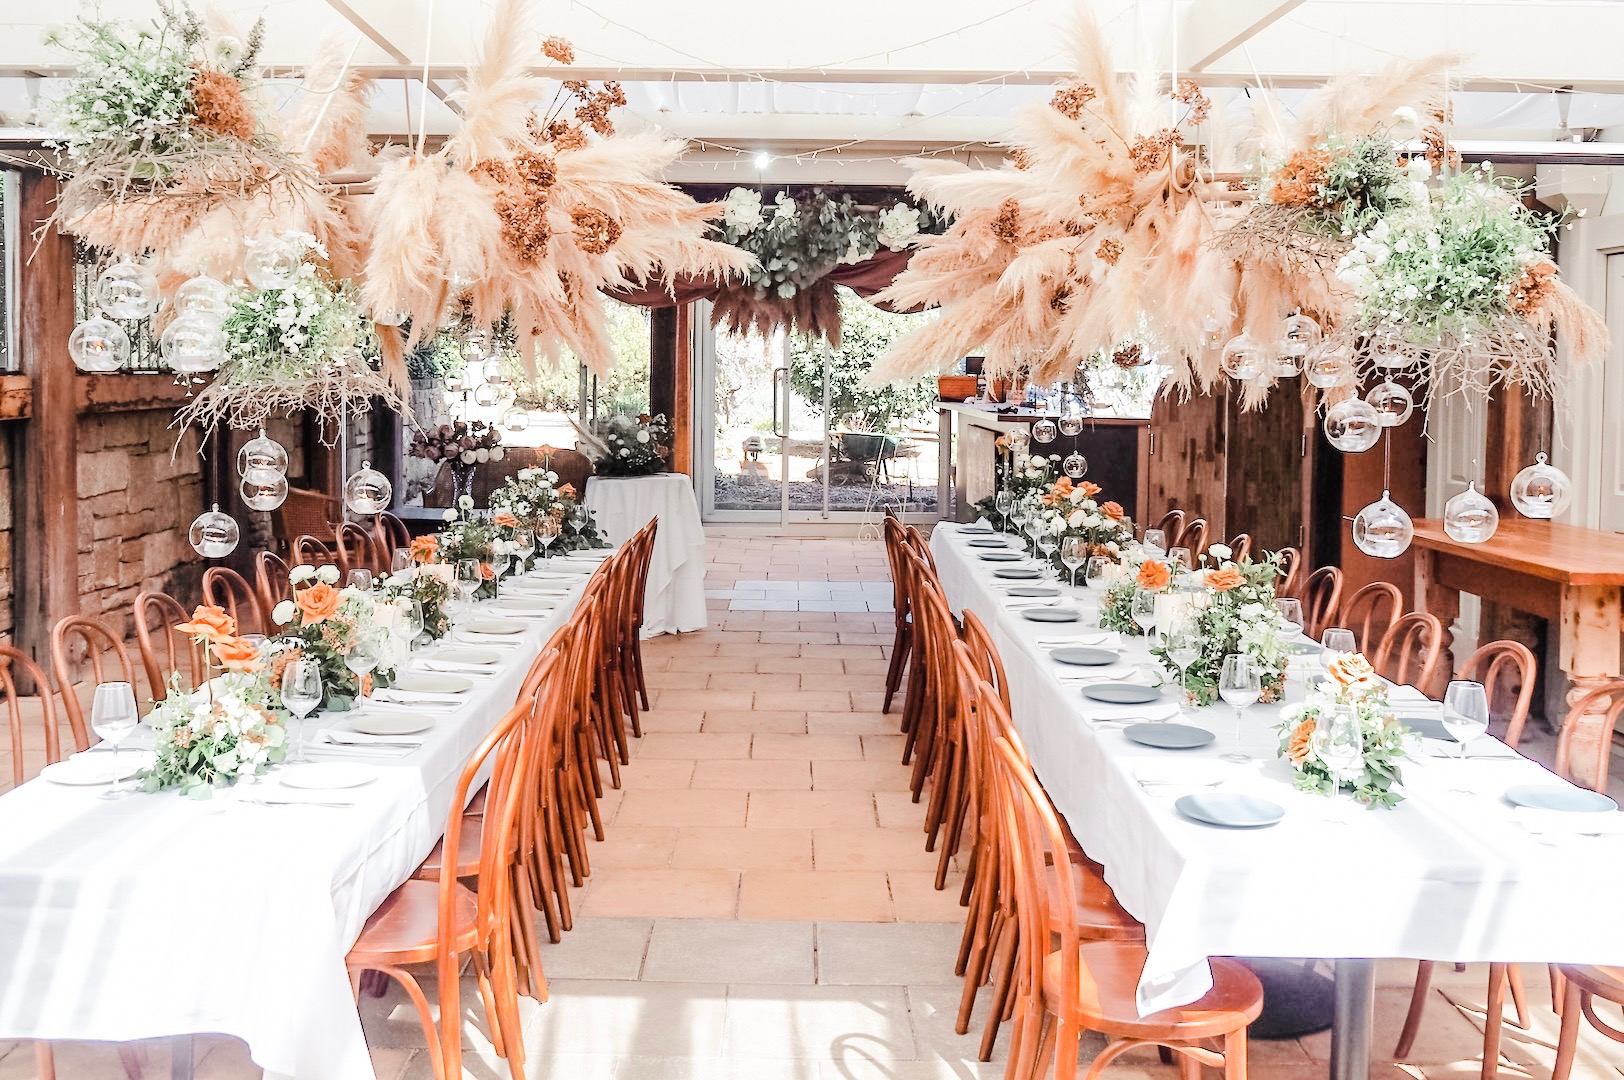 love, hope, flowers, lhflowers, wedding flowers, flowers, destination wedding, southern highlands, wedding, farm wedding, wedding, venue, south, coast, rustic wedding, barn, farm kangaroo, guest table flowers, pampas, grass